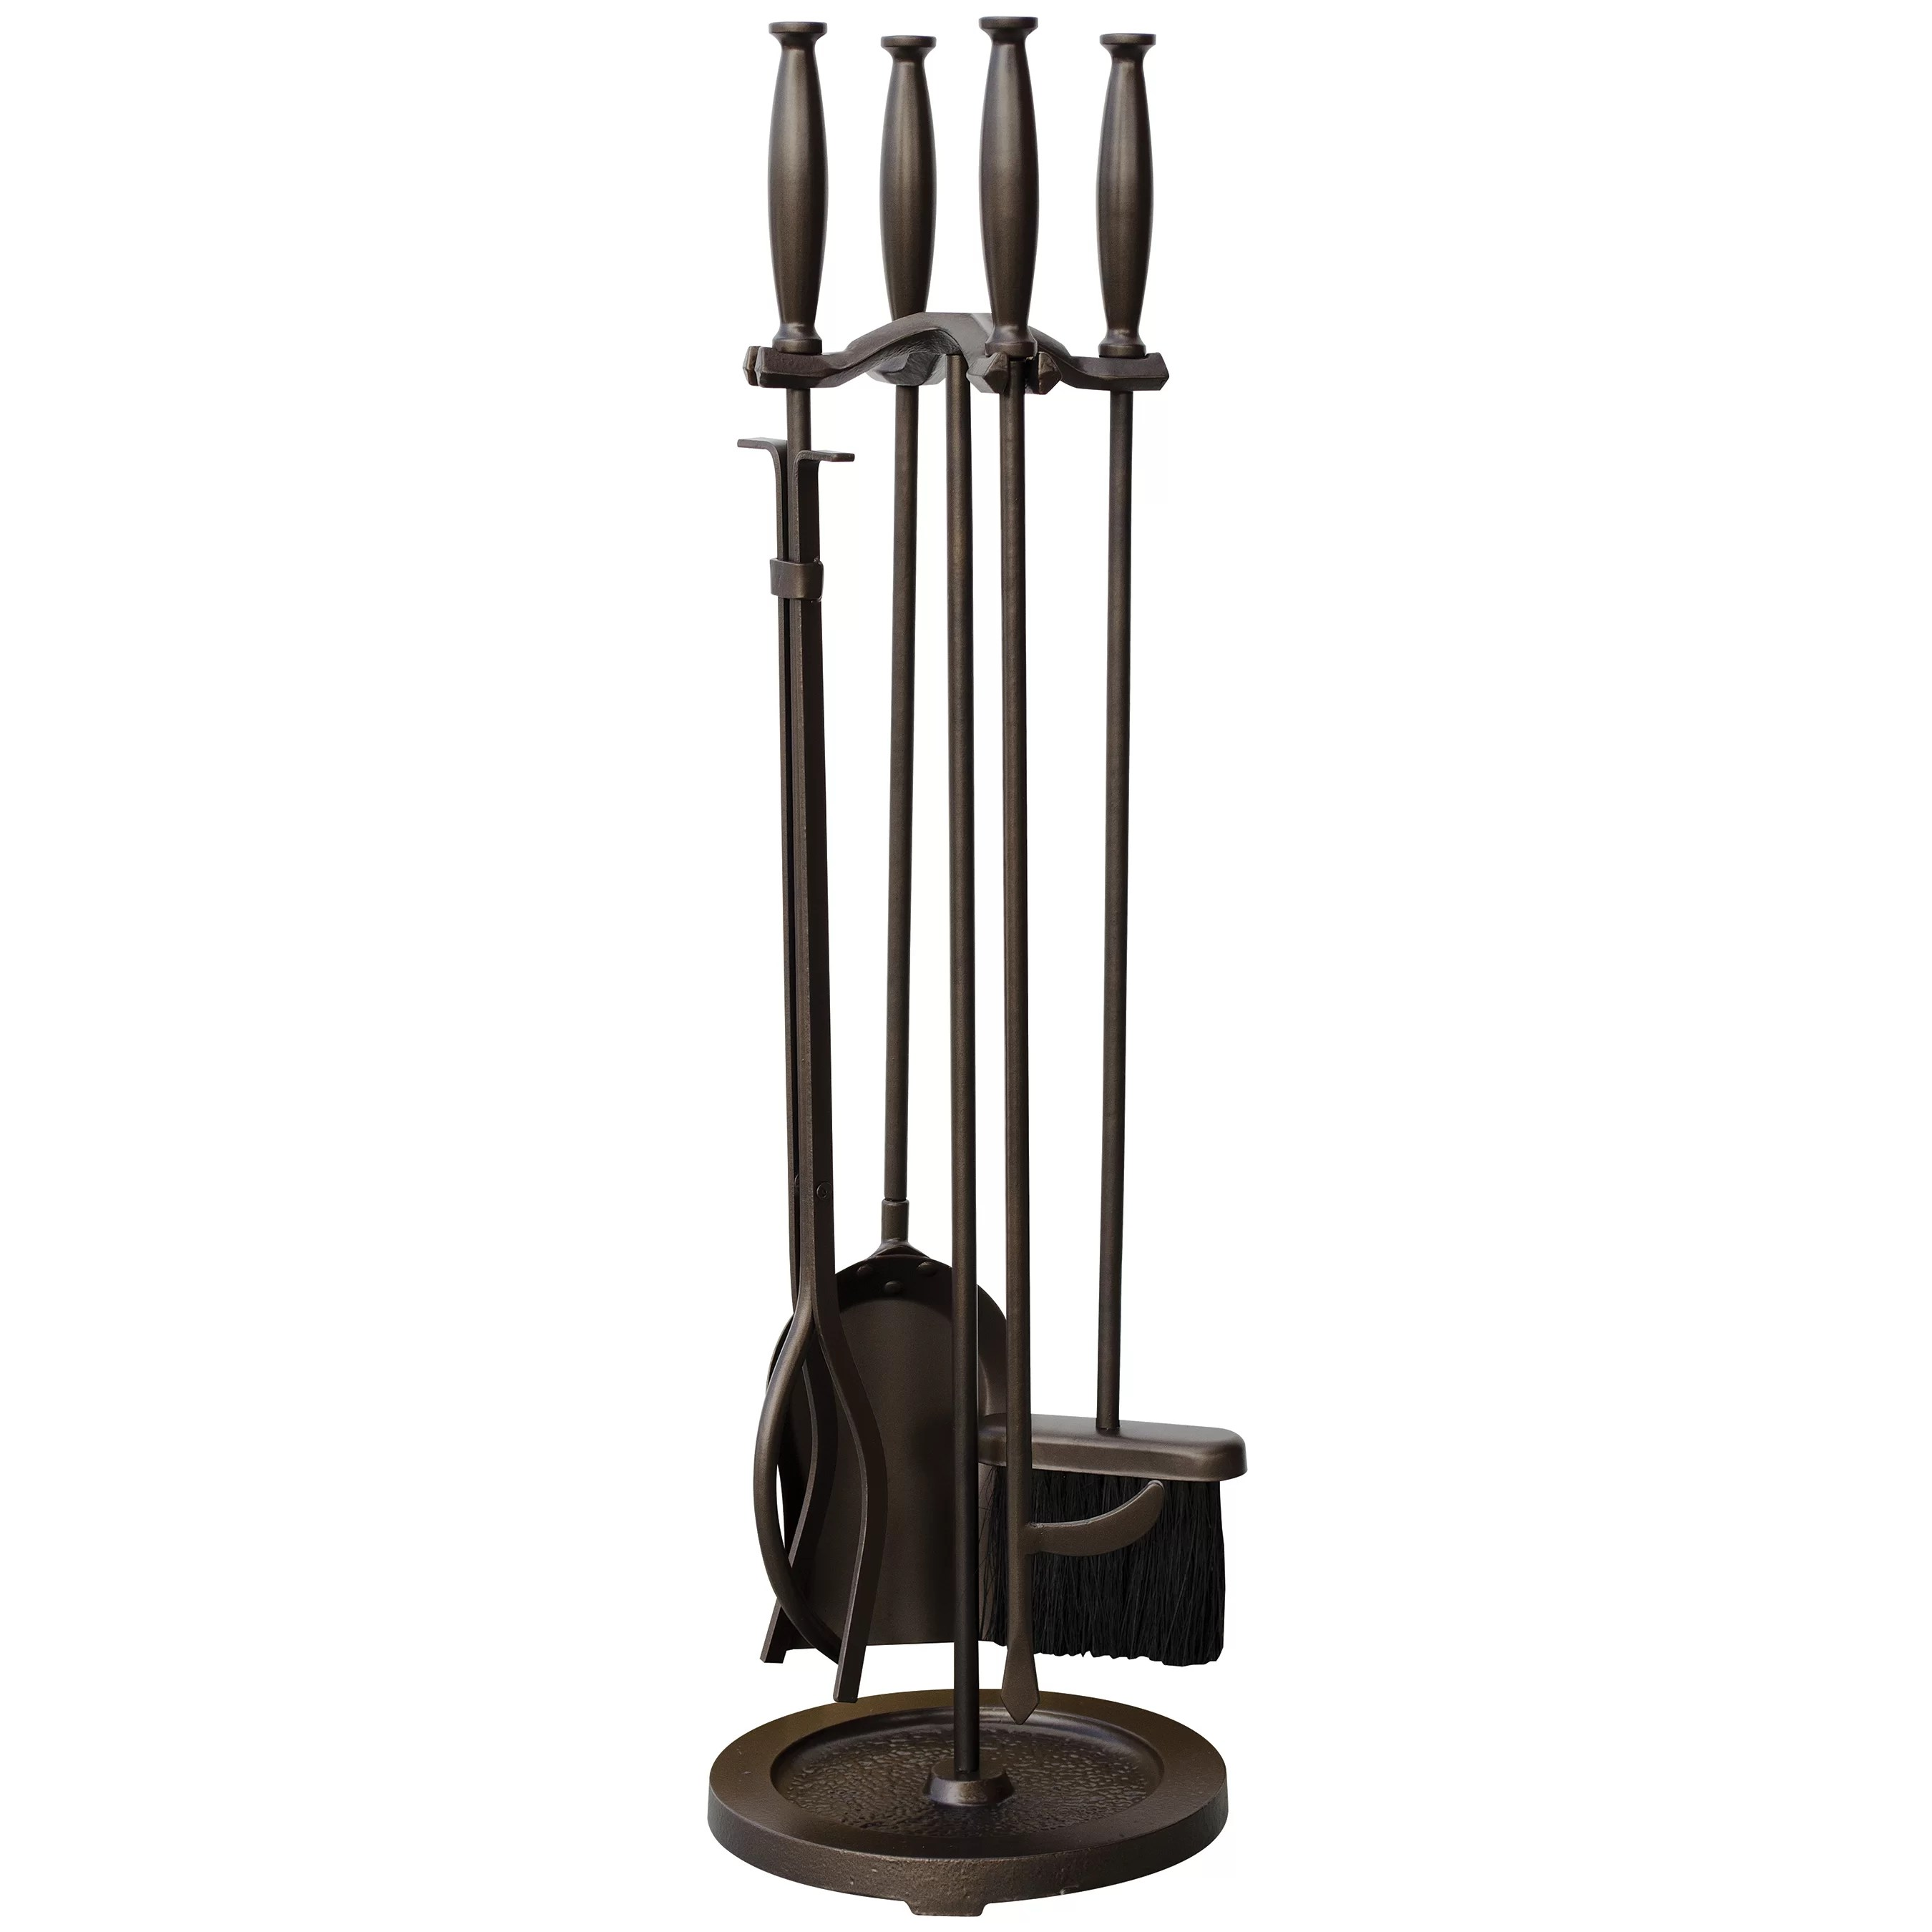 Uniflame 5 Piece Fireplace Tool Set  Reviews  Wayfair